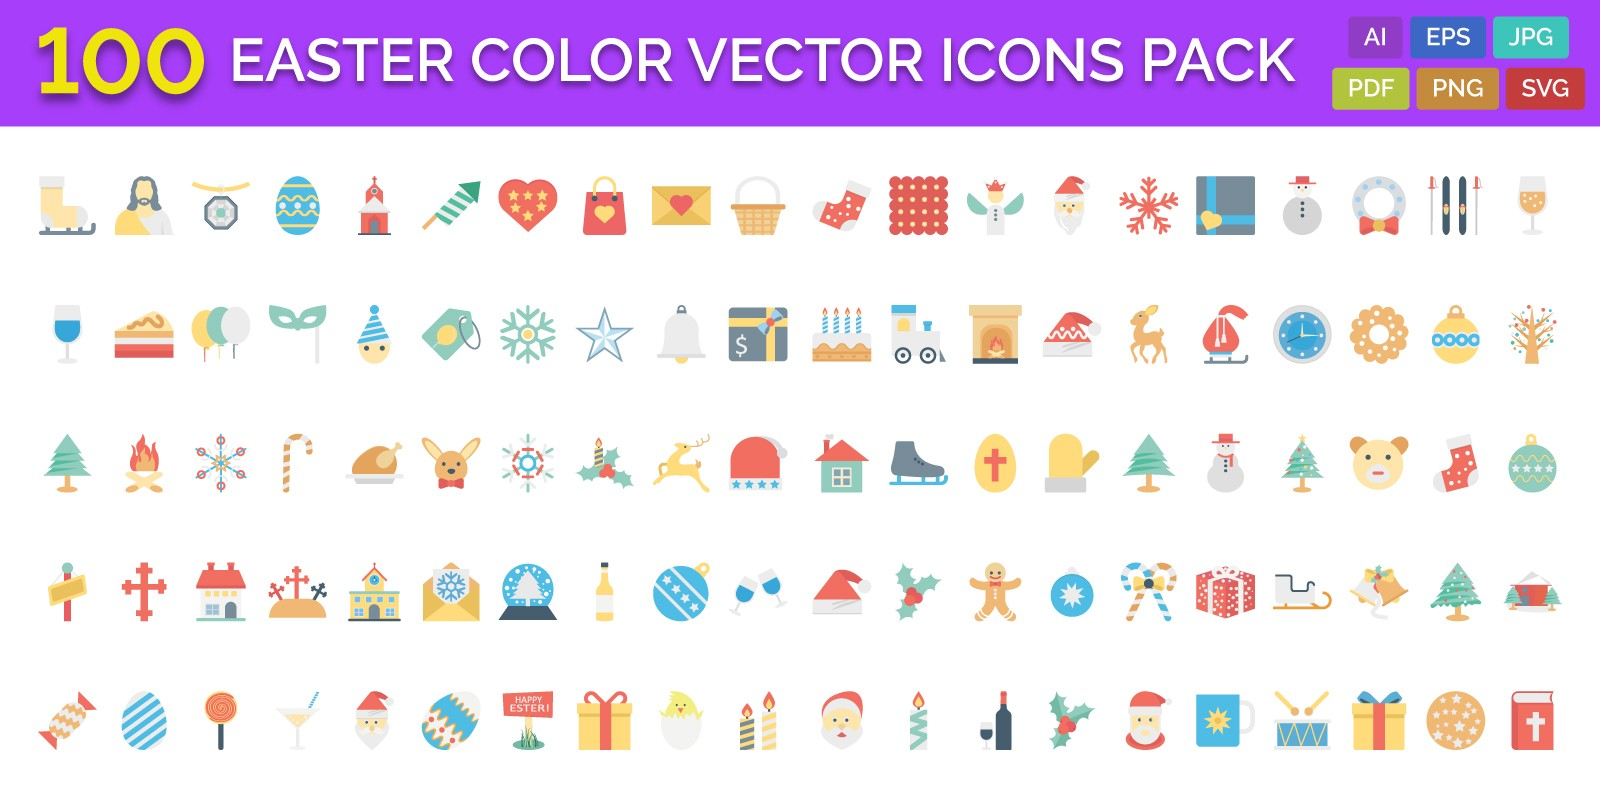 100 Easter Color Vector Icons Pack